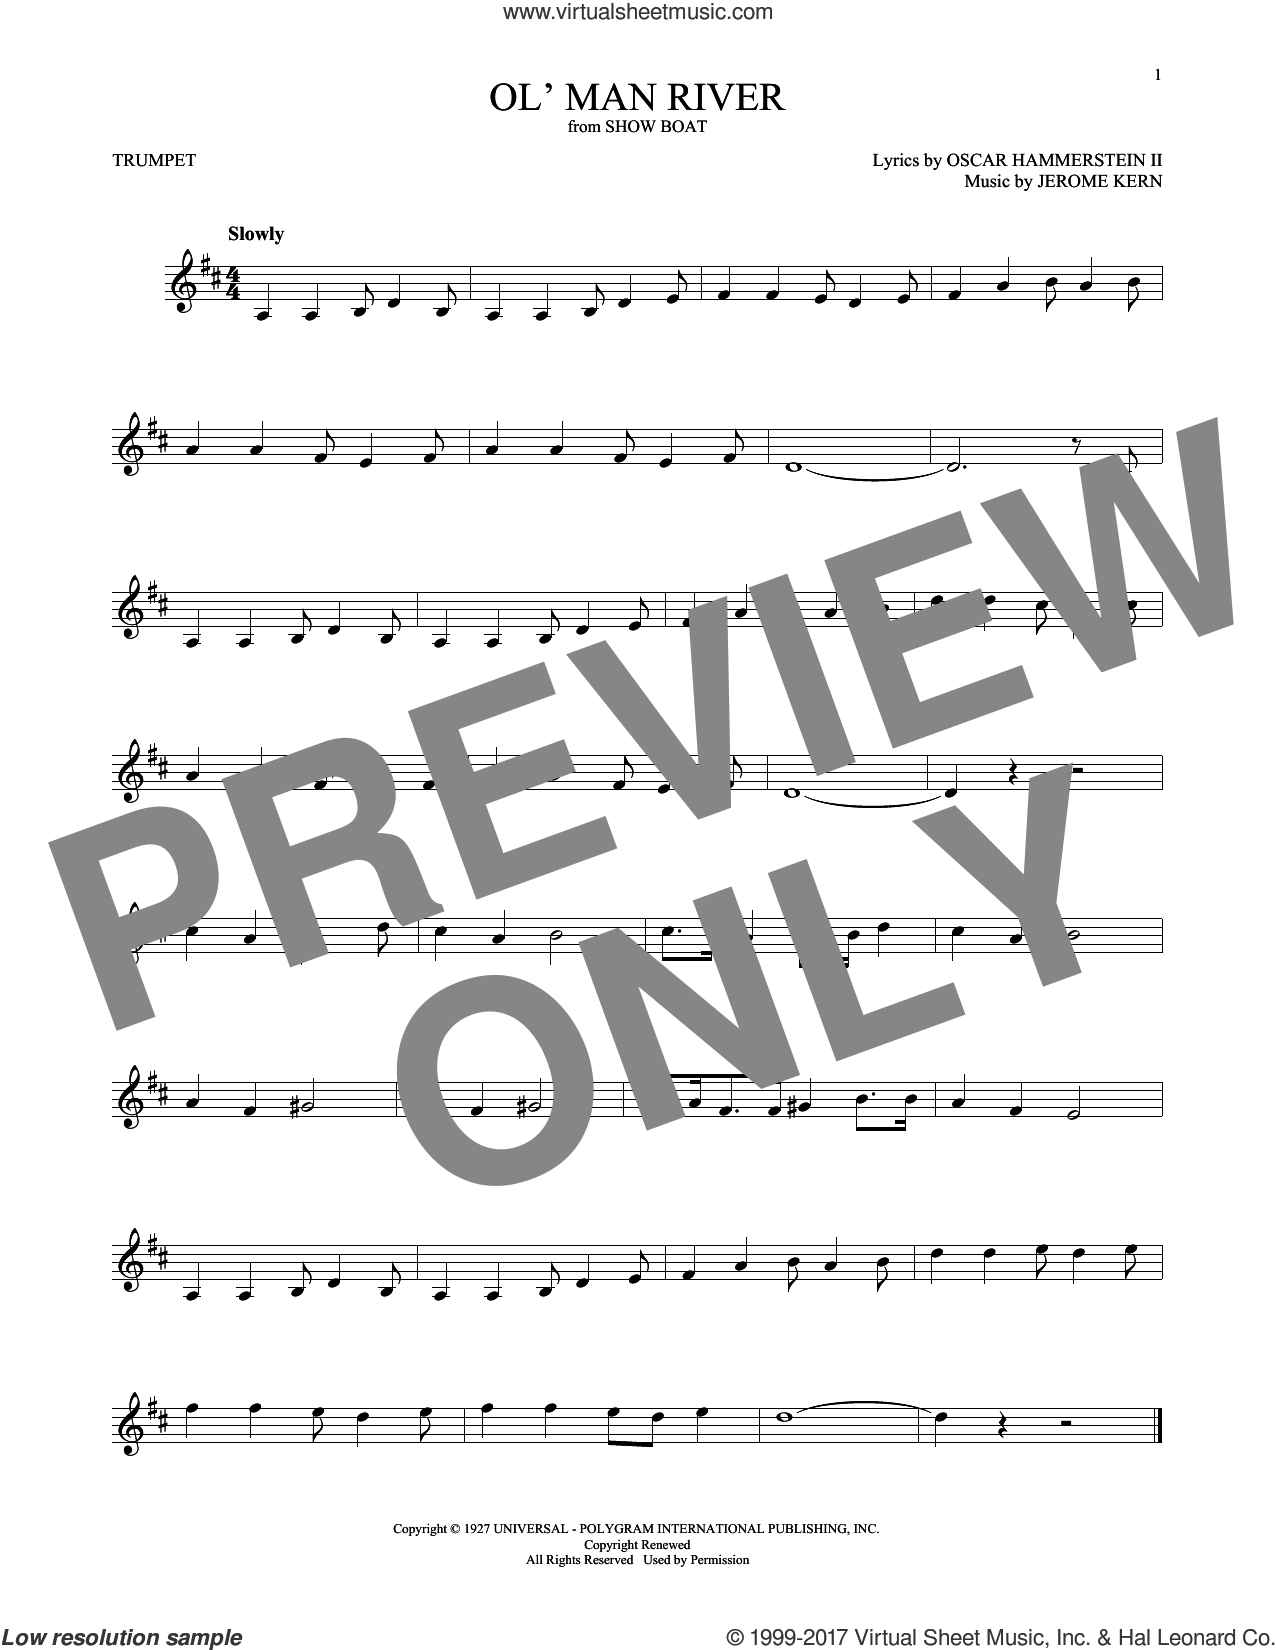 Ol' Man River sheet music for trumpet solo by Oscar II Hammerstein and Jerome Kern, intermediate skill level